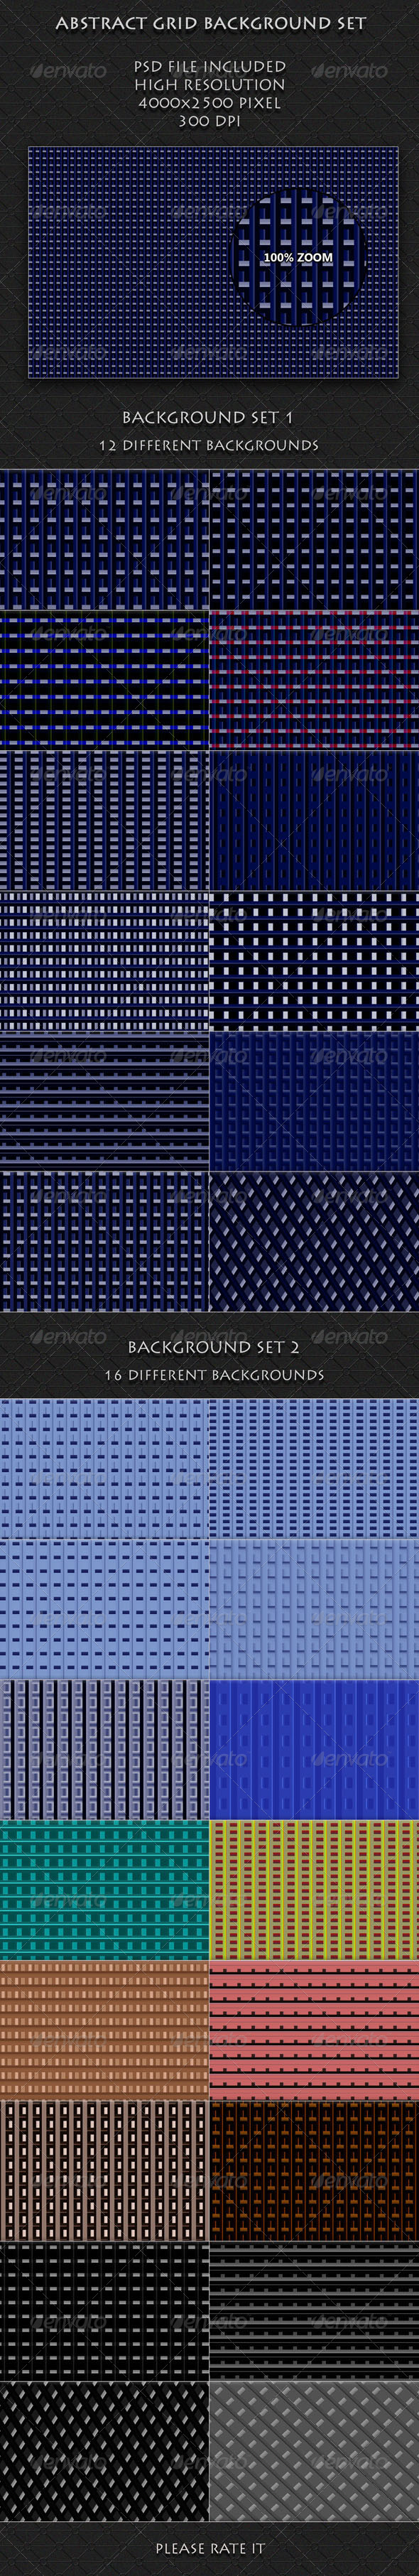 Abstract Grid Background Set - Patterns Backgrounds